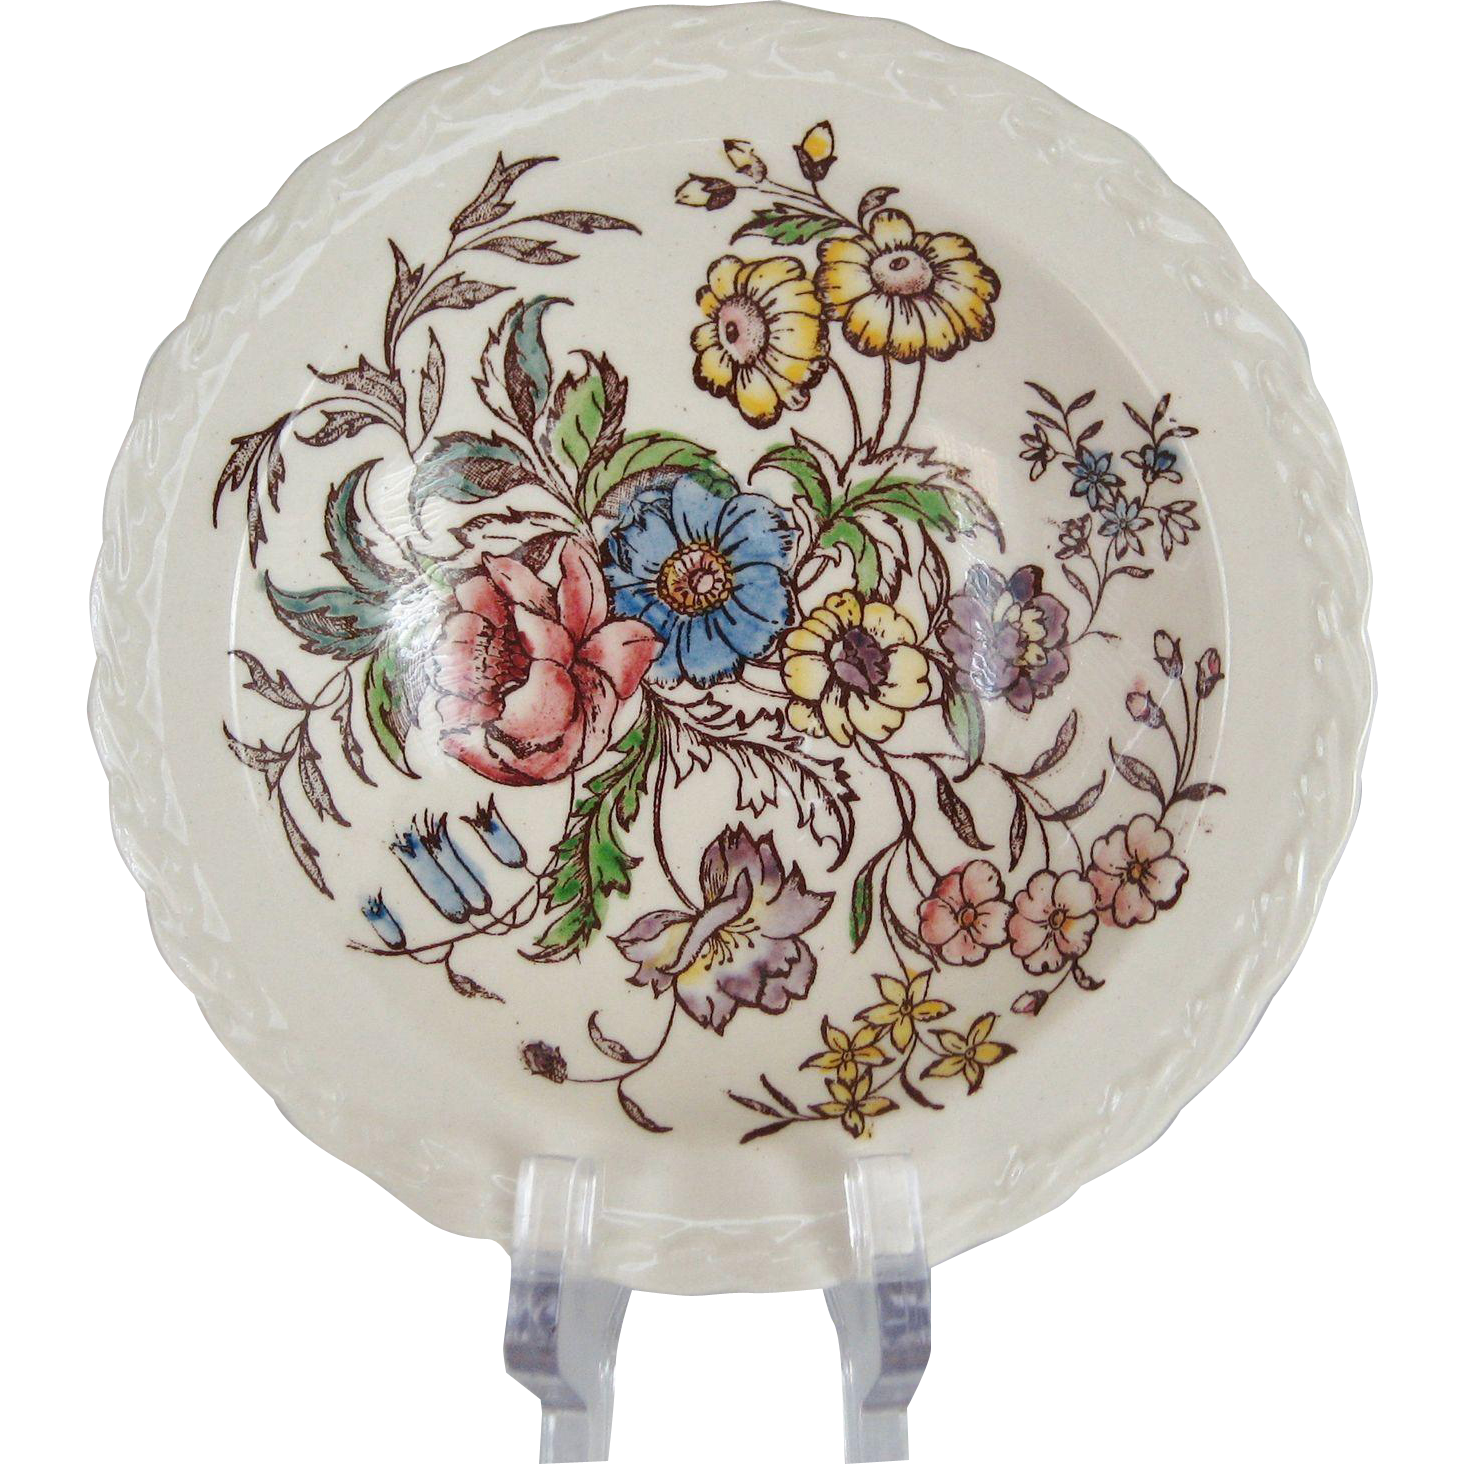 Vernonware Sauce or Dessert Bowls - 6 Available